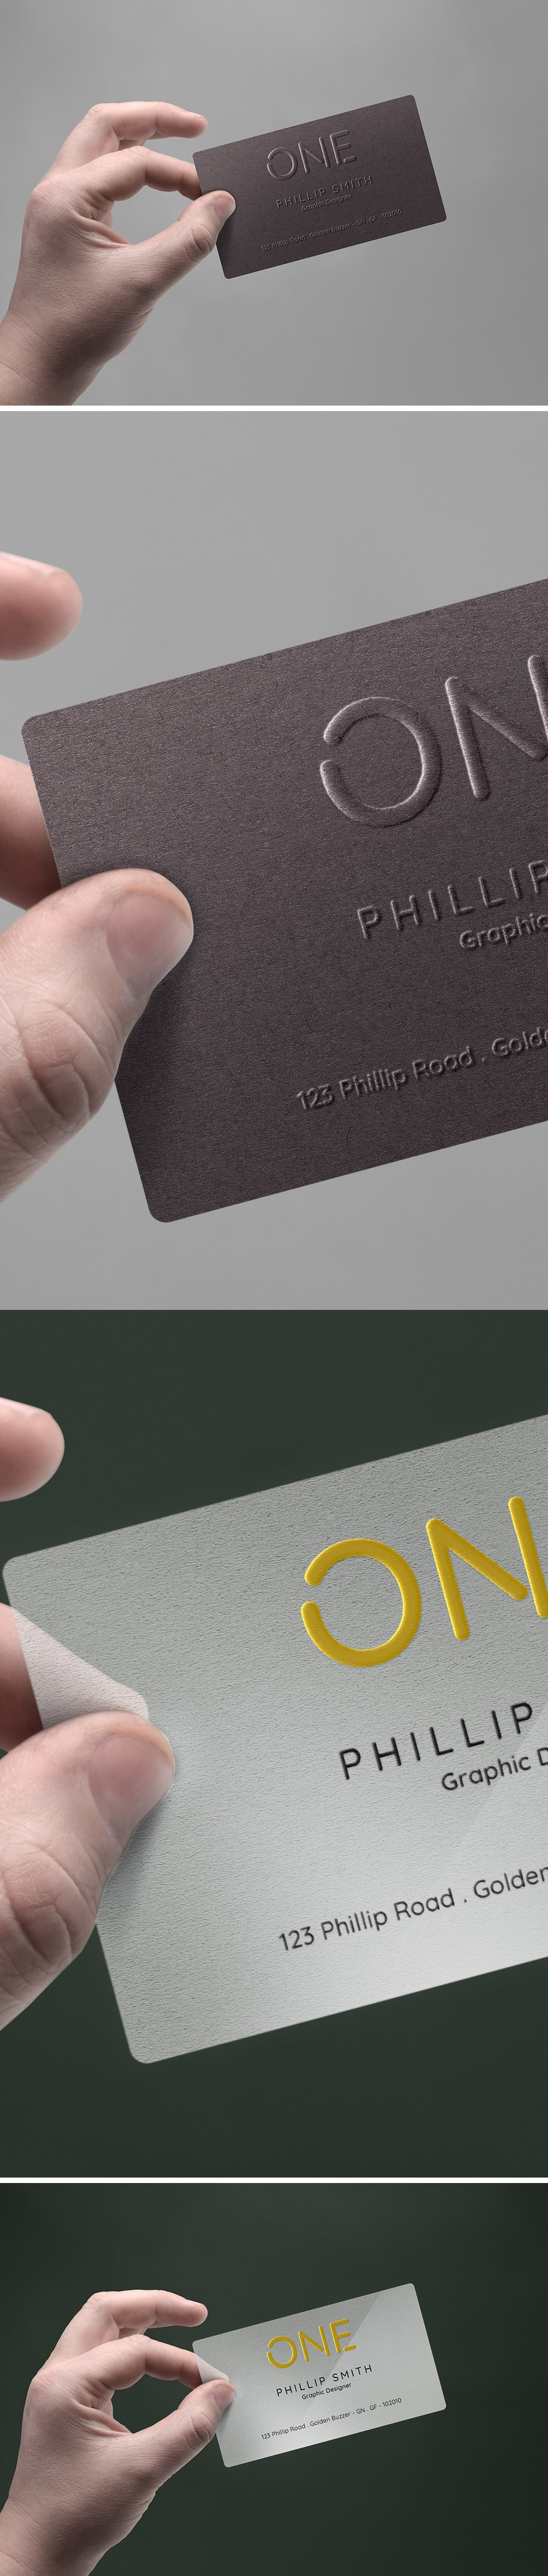 Realistic business card mockup mockup business cards and business free download realistic business card mockup and add it to your business card design in other reheart Gallery